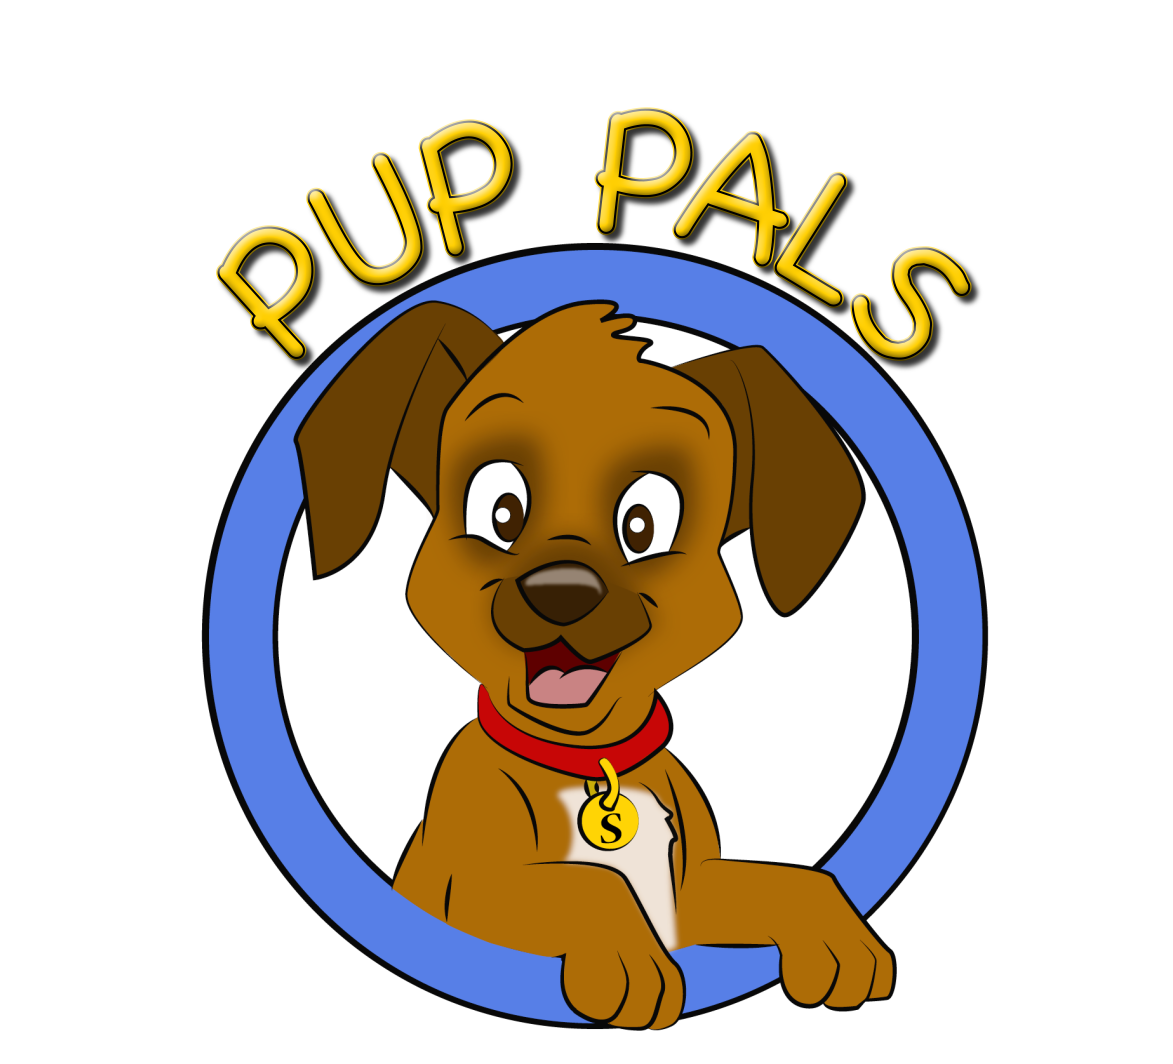 Puppy Dog Pals Clipart At Getdrawings Com Free For